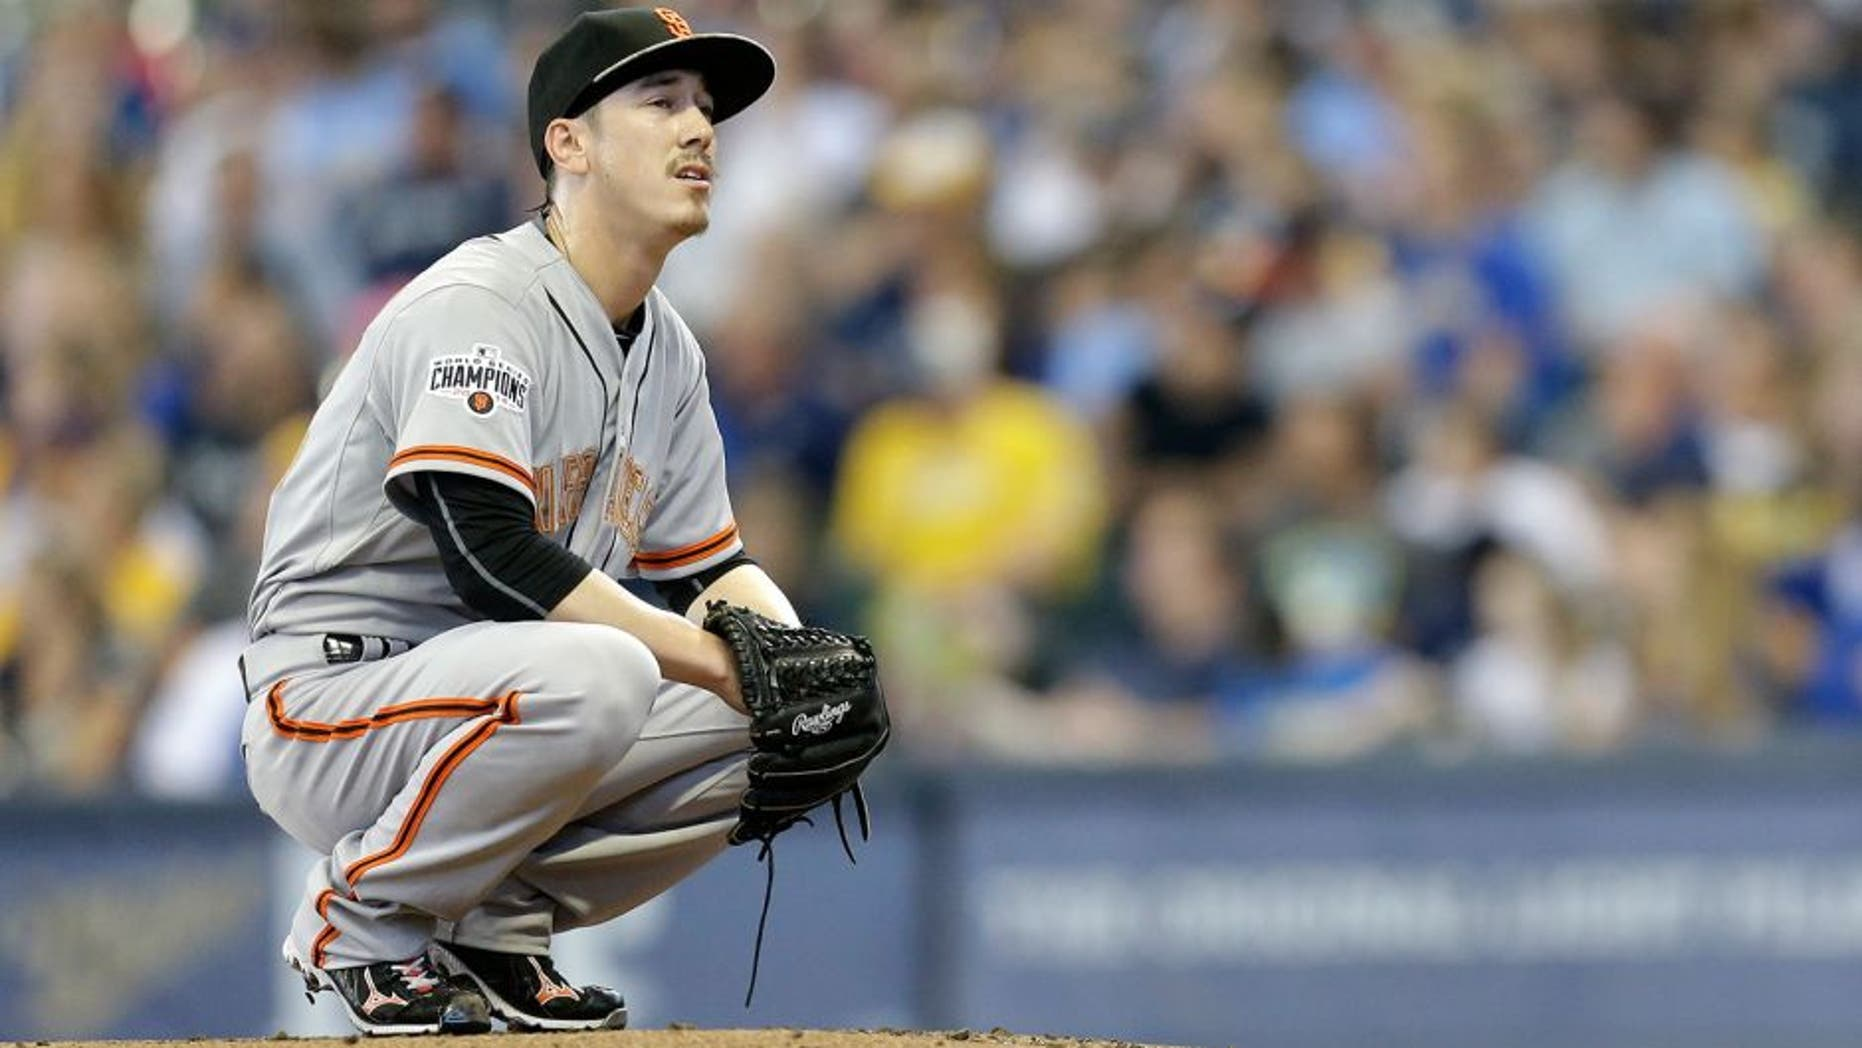 MILWAUKEE, WI - MAY 25: Tim Lincecum #55 of the San Francisco Giants during the game against the Milwaukee Brewers at Miller Park on May 25, 2015 in Milwaukee, Wisconsin. (Photo by Mike McGinnis/Getty Images)